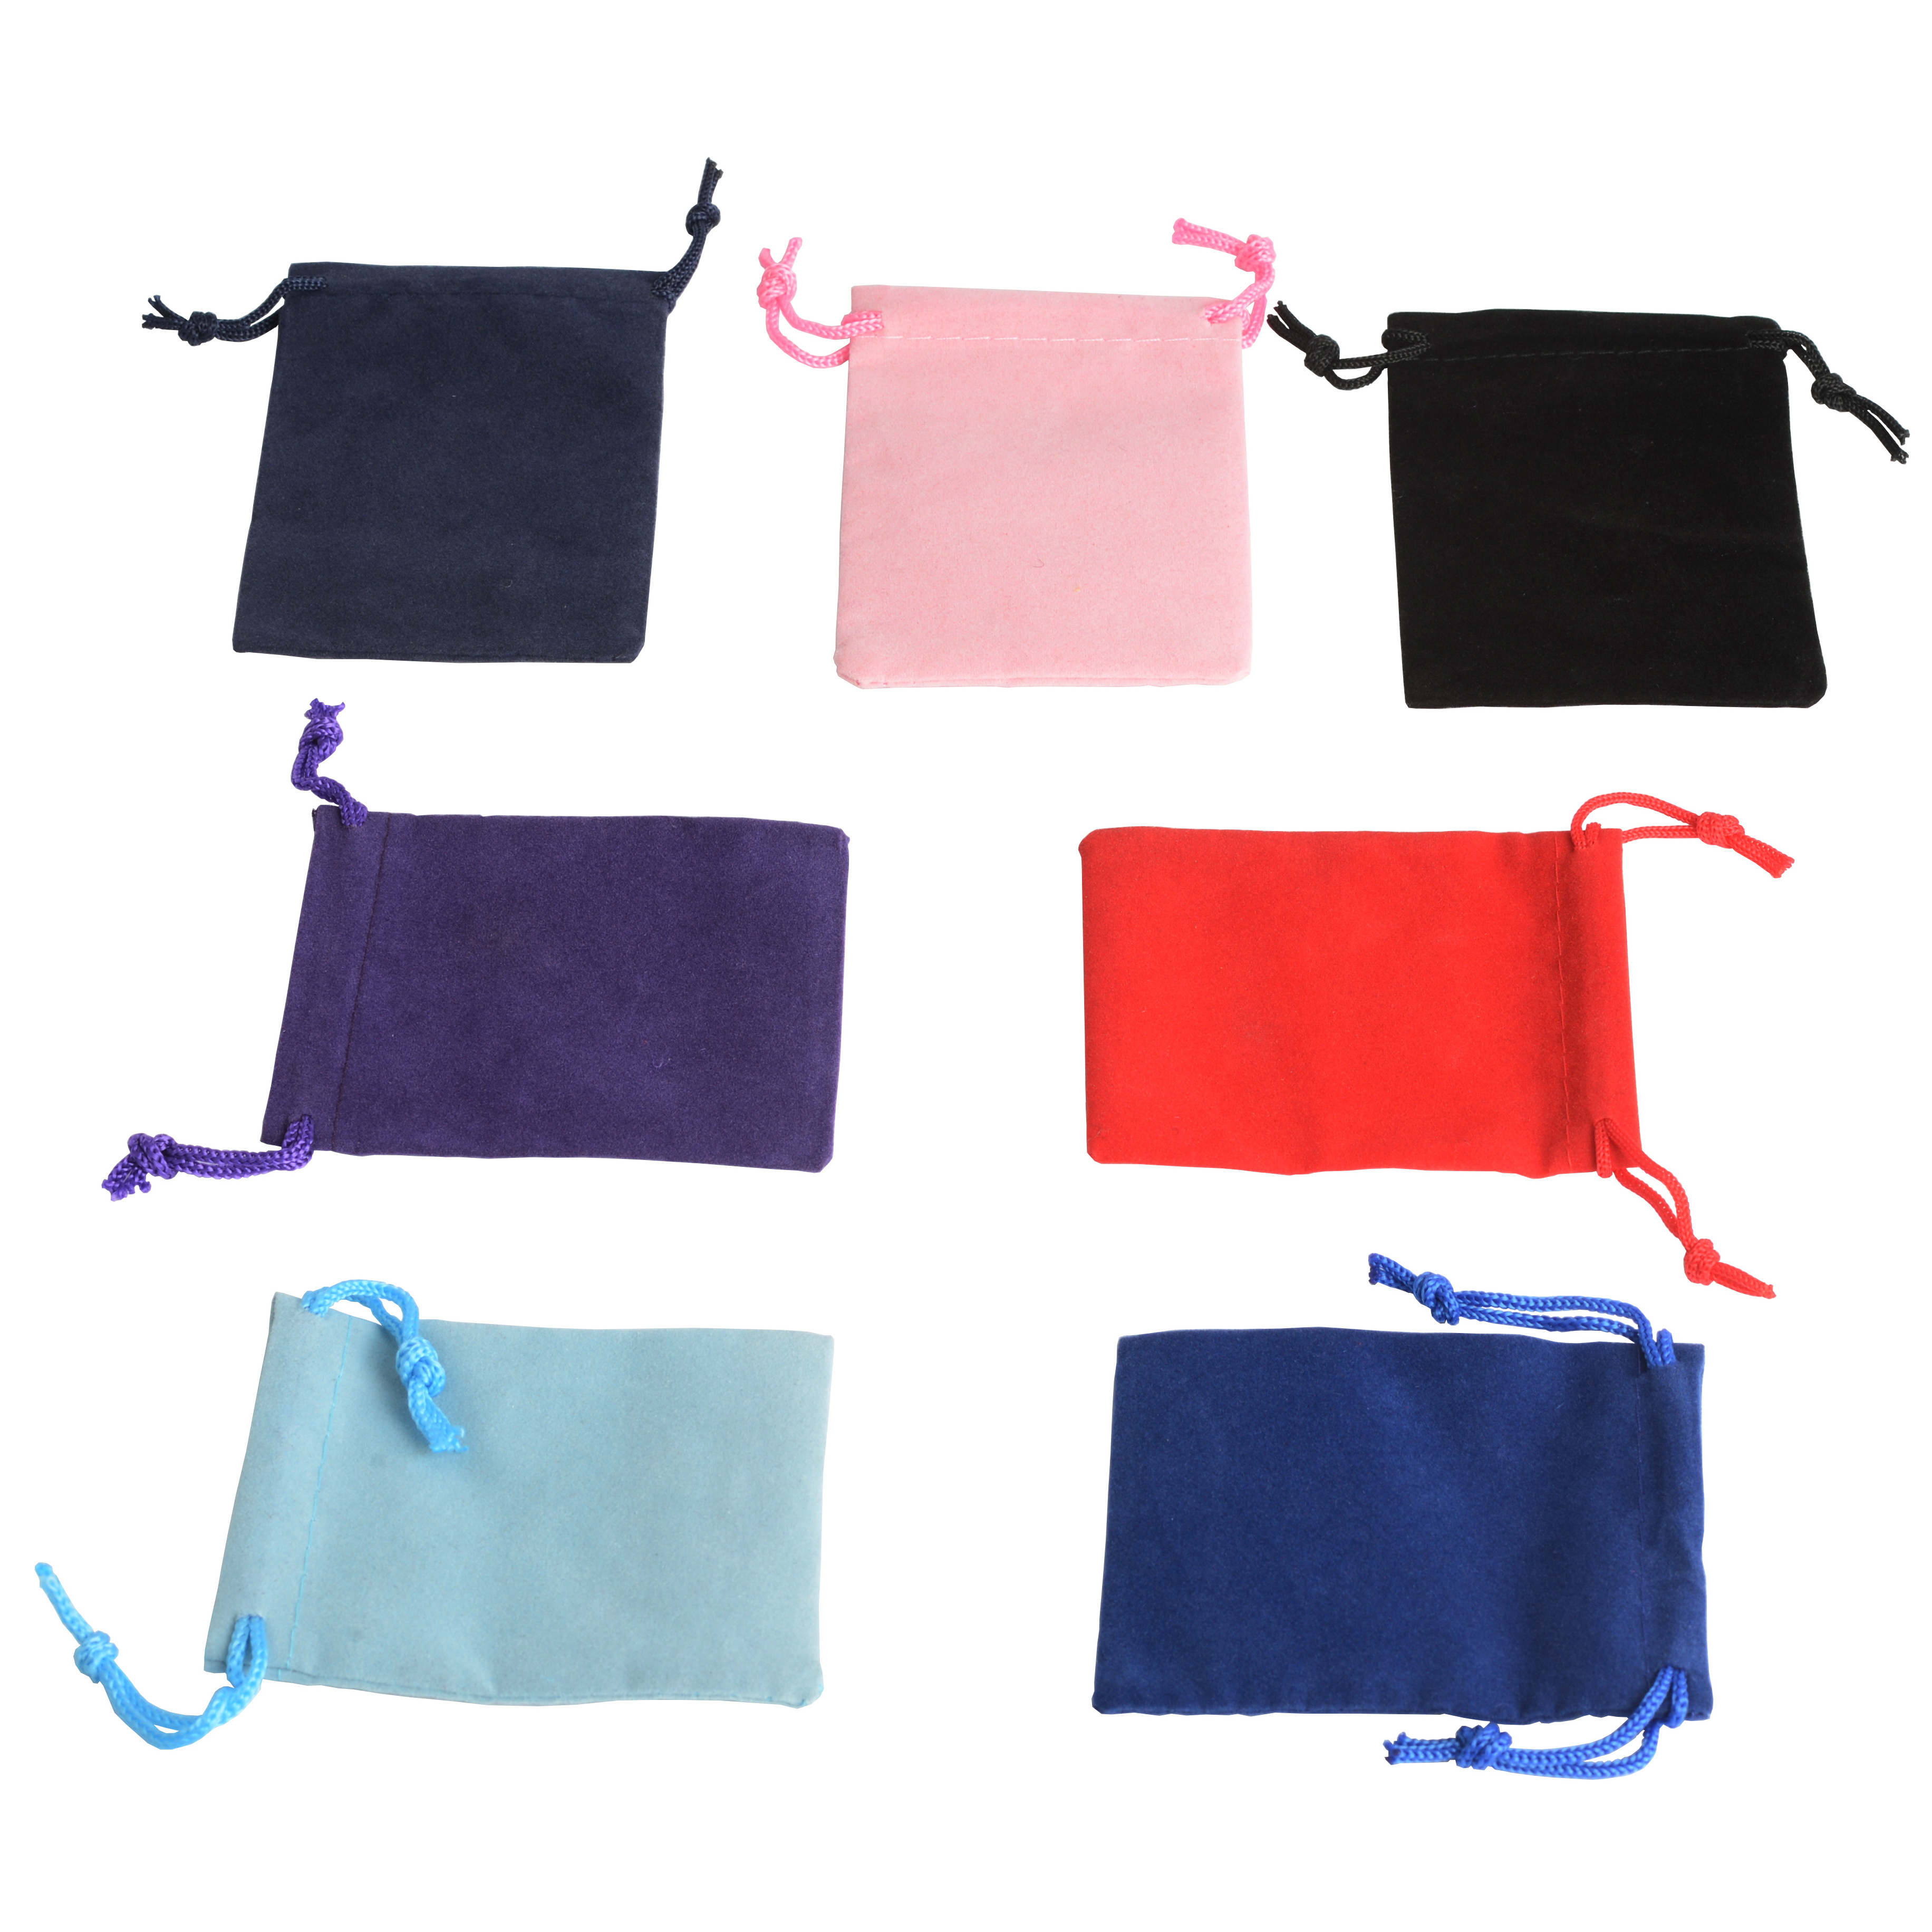 50Pcs 5x7 Velvet Bag Drawstrings Pouches Small Jewelry Gift Display Packing Bags Candy Party Festival Christmas Wedding Activity